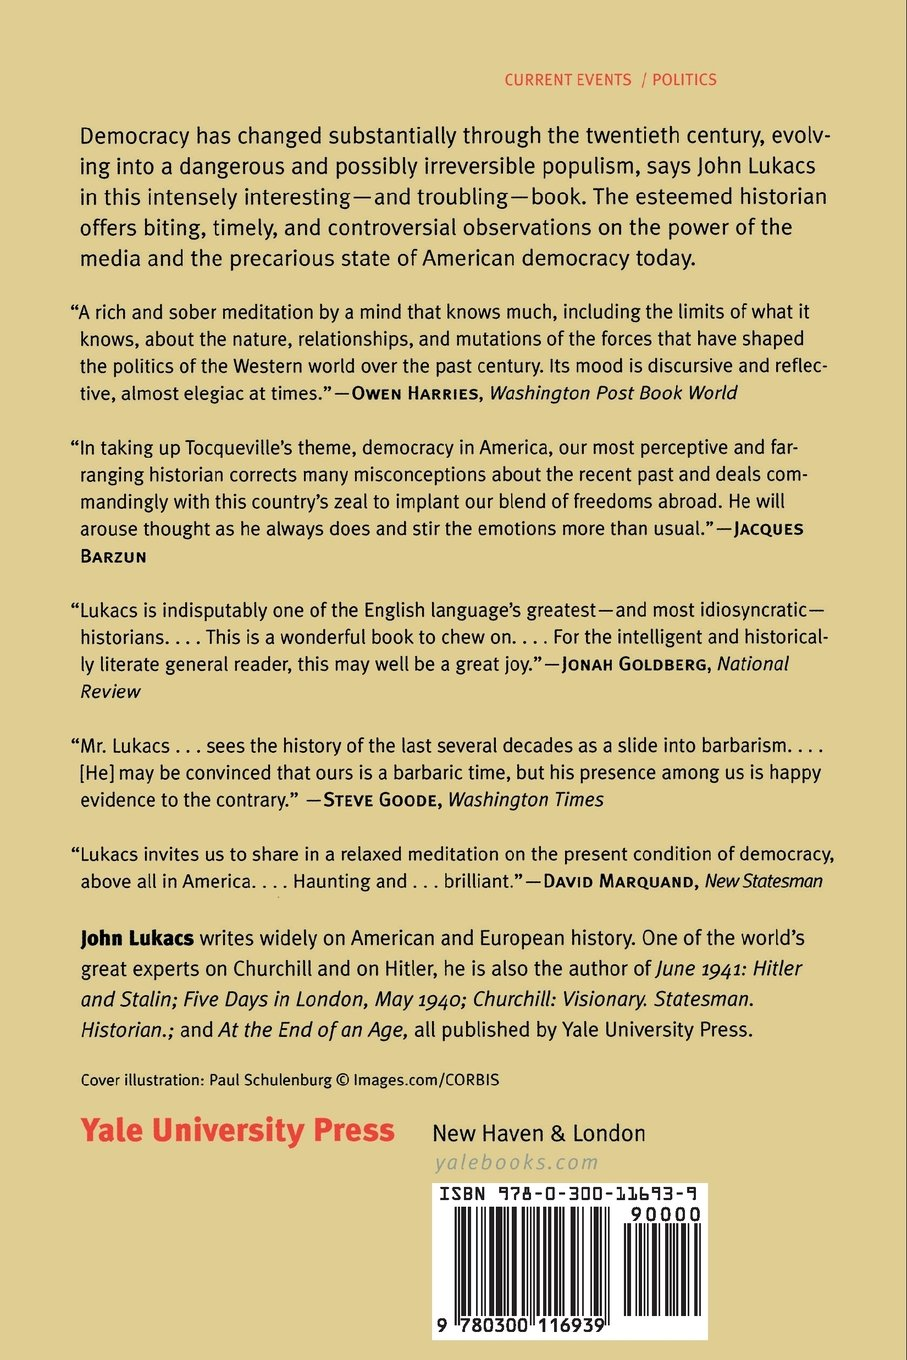 Democracy and Populism: Fear and Hatred: John Lukacs: 9780300116939:  Amazon.com: Books